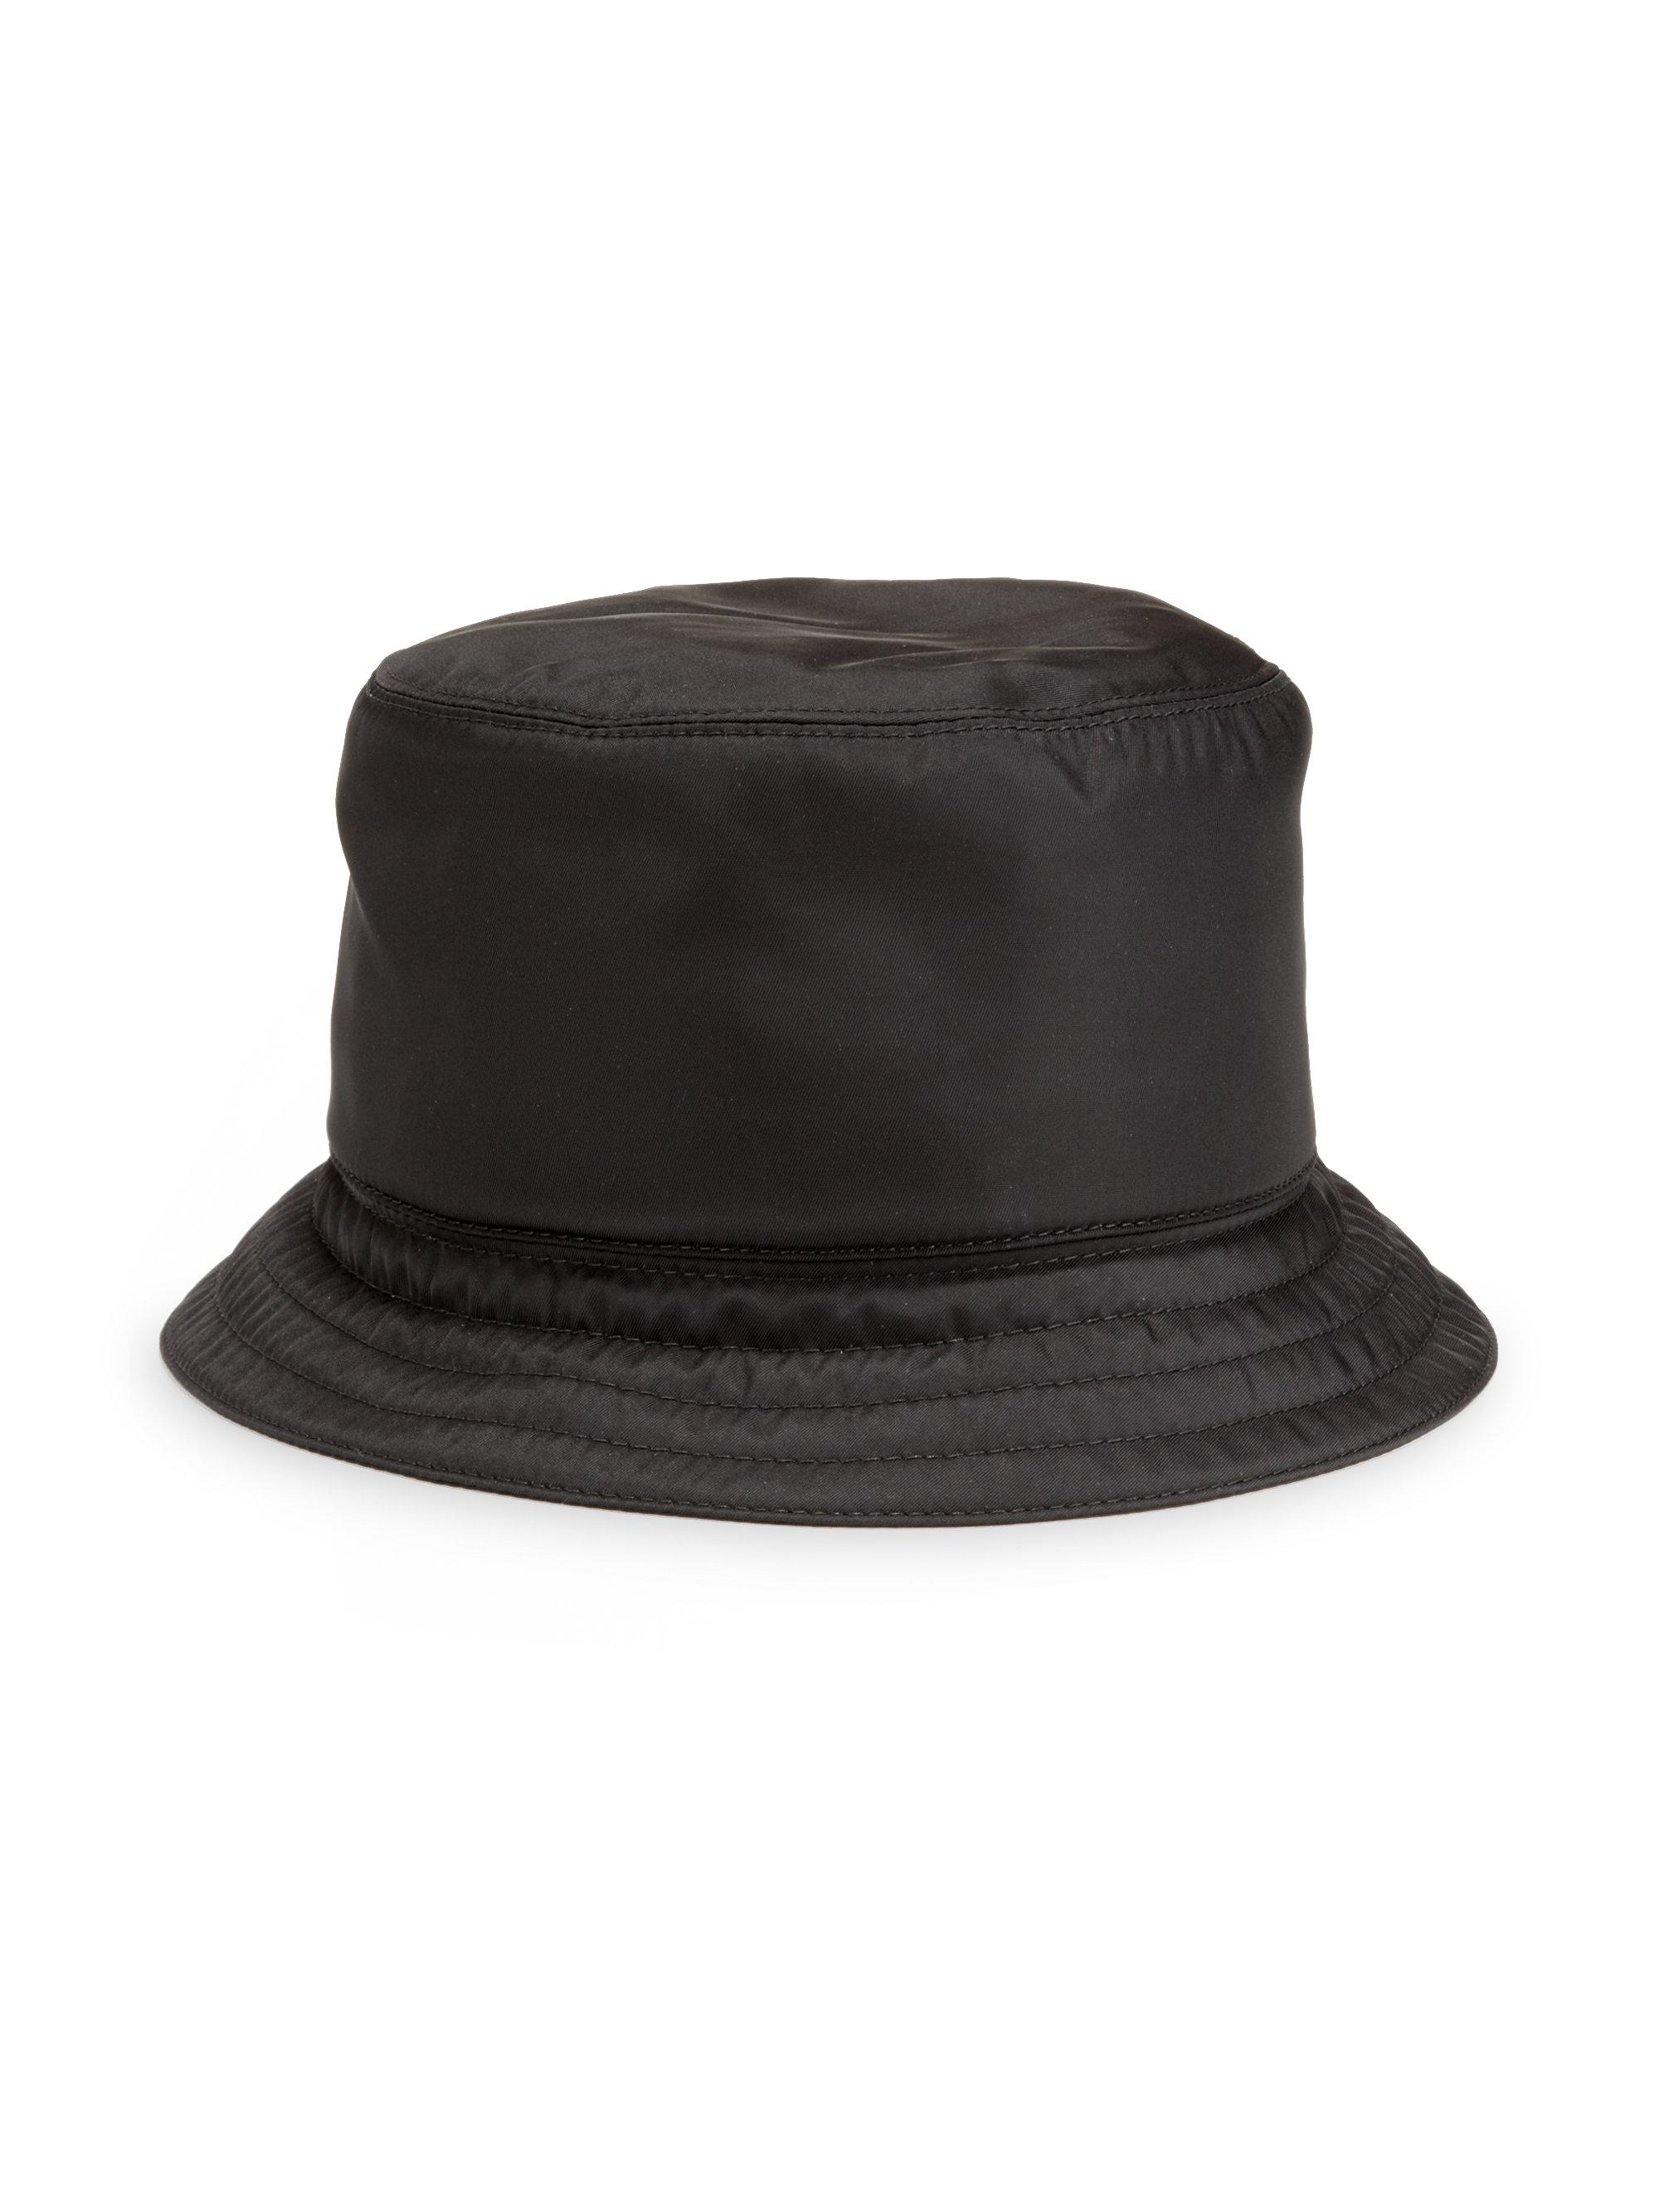 f220f32ae7a Lyst - Prada Nylon Bucket Hat in Black for Men